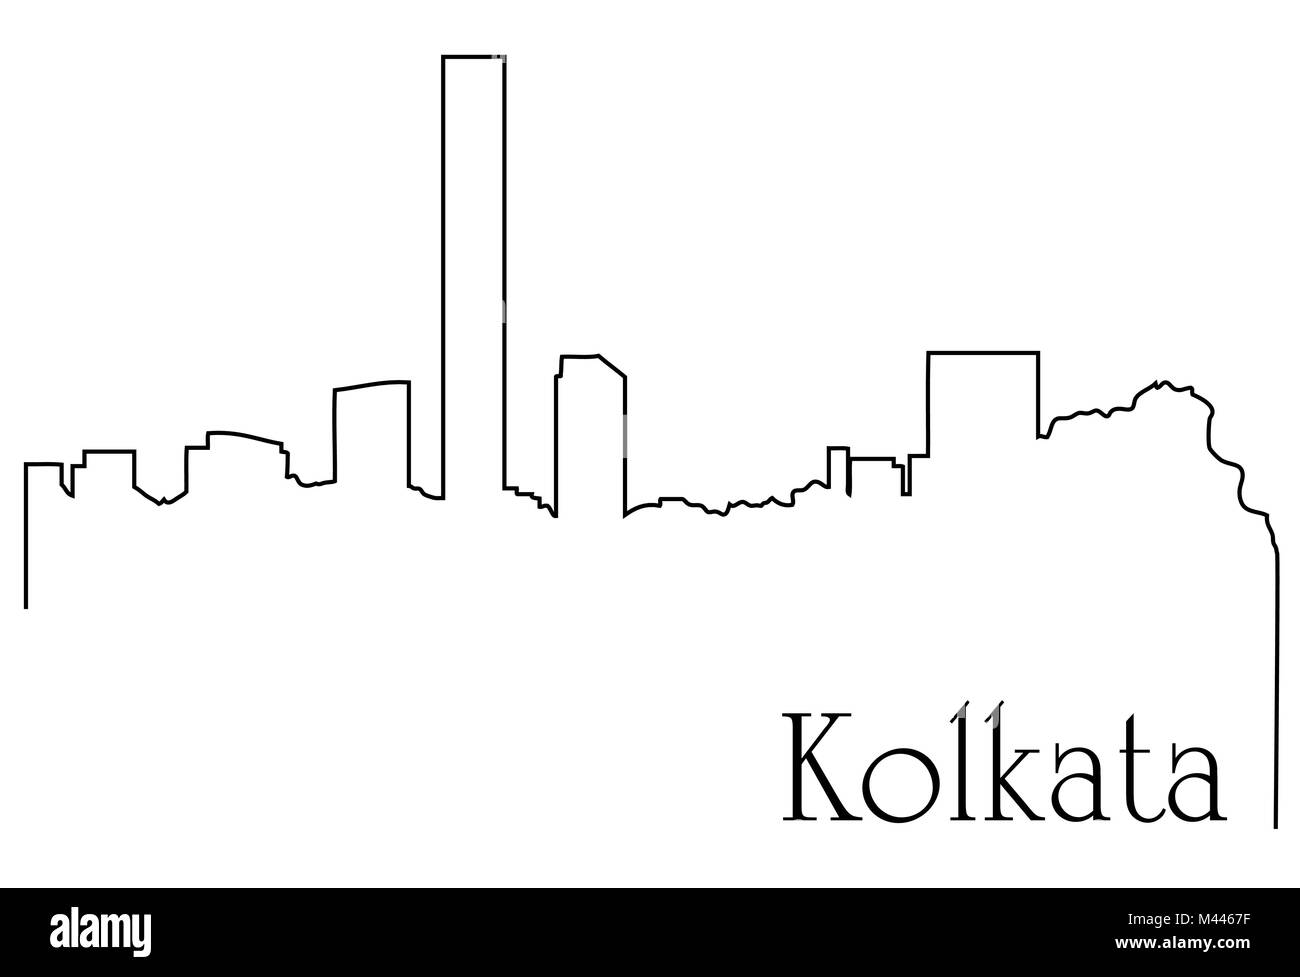 Kolkata city one line drawing abstract background with  metropolis cityscape - Stock Vector